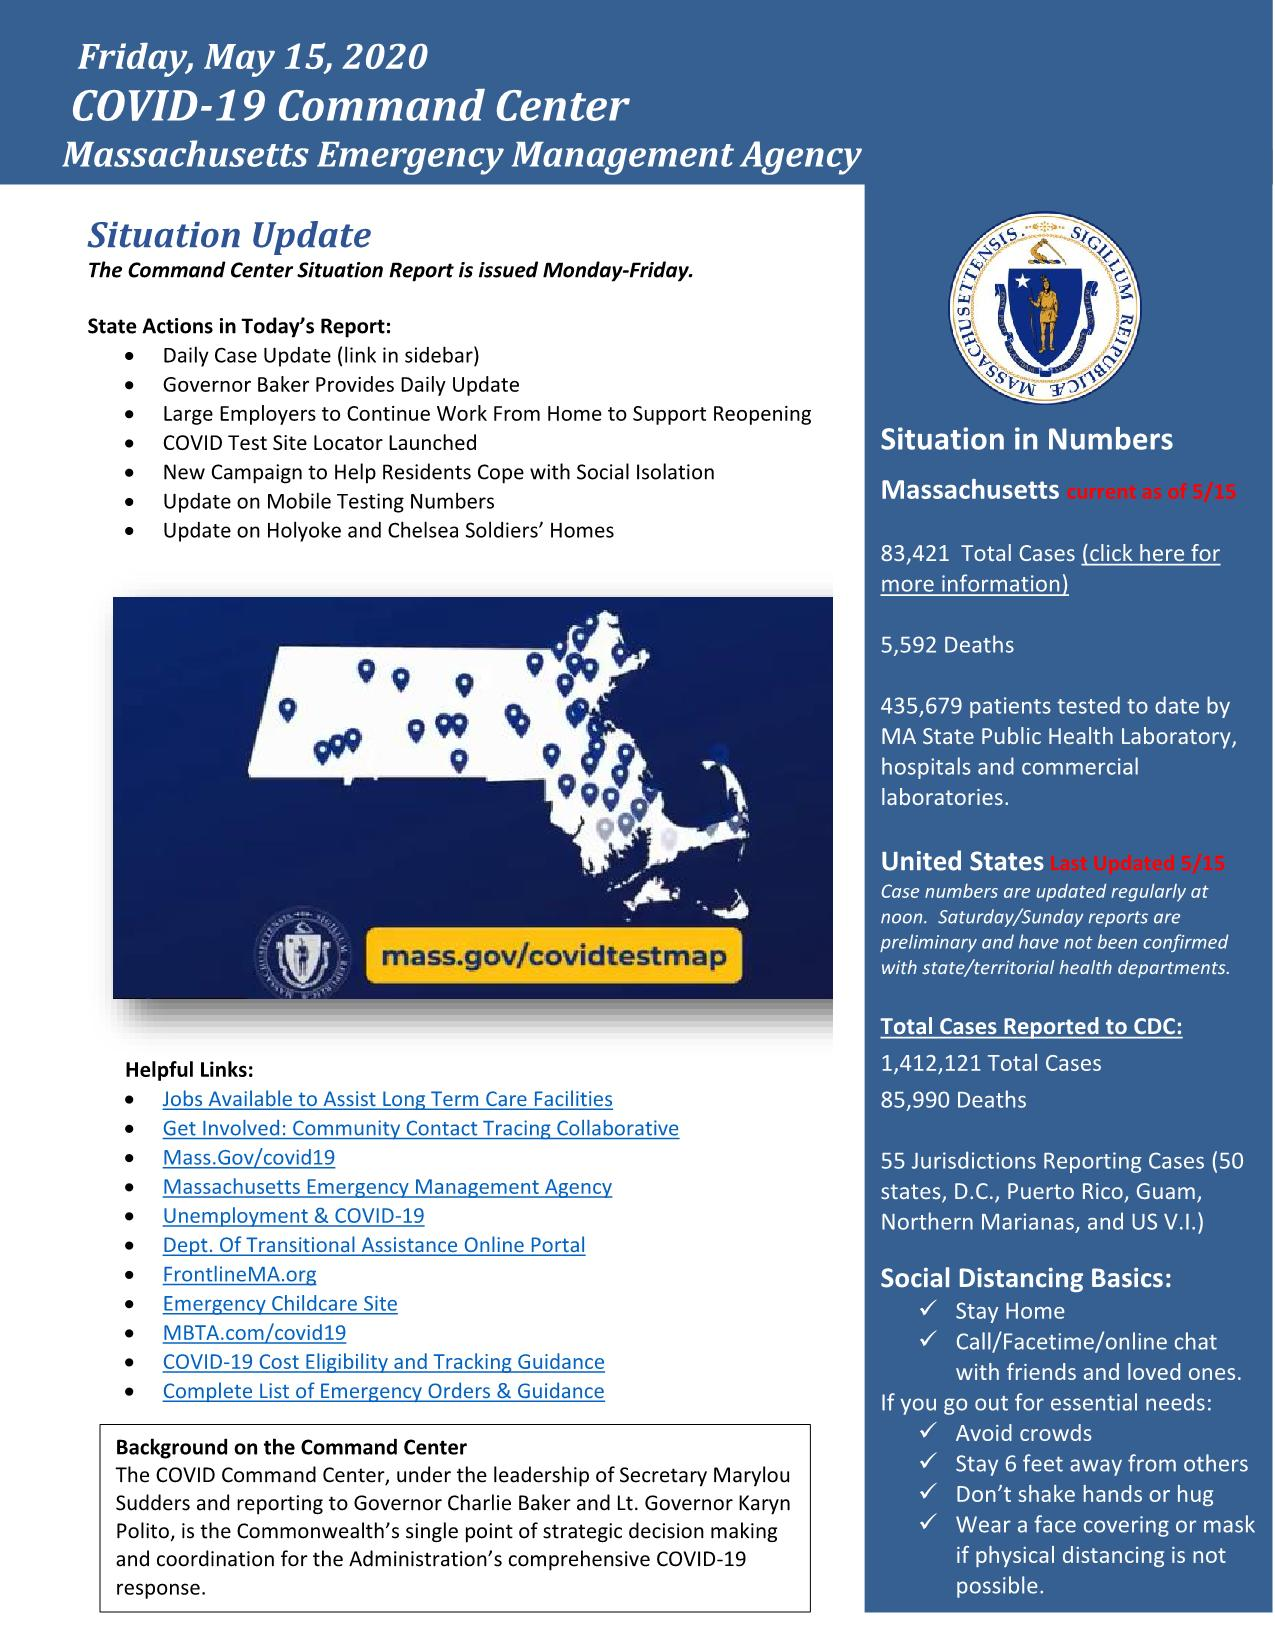 https://www.mass.gov/resource/information-on-the-outbreak-of-coronavirus-disease-2019-covid-19